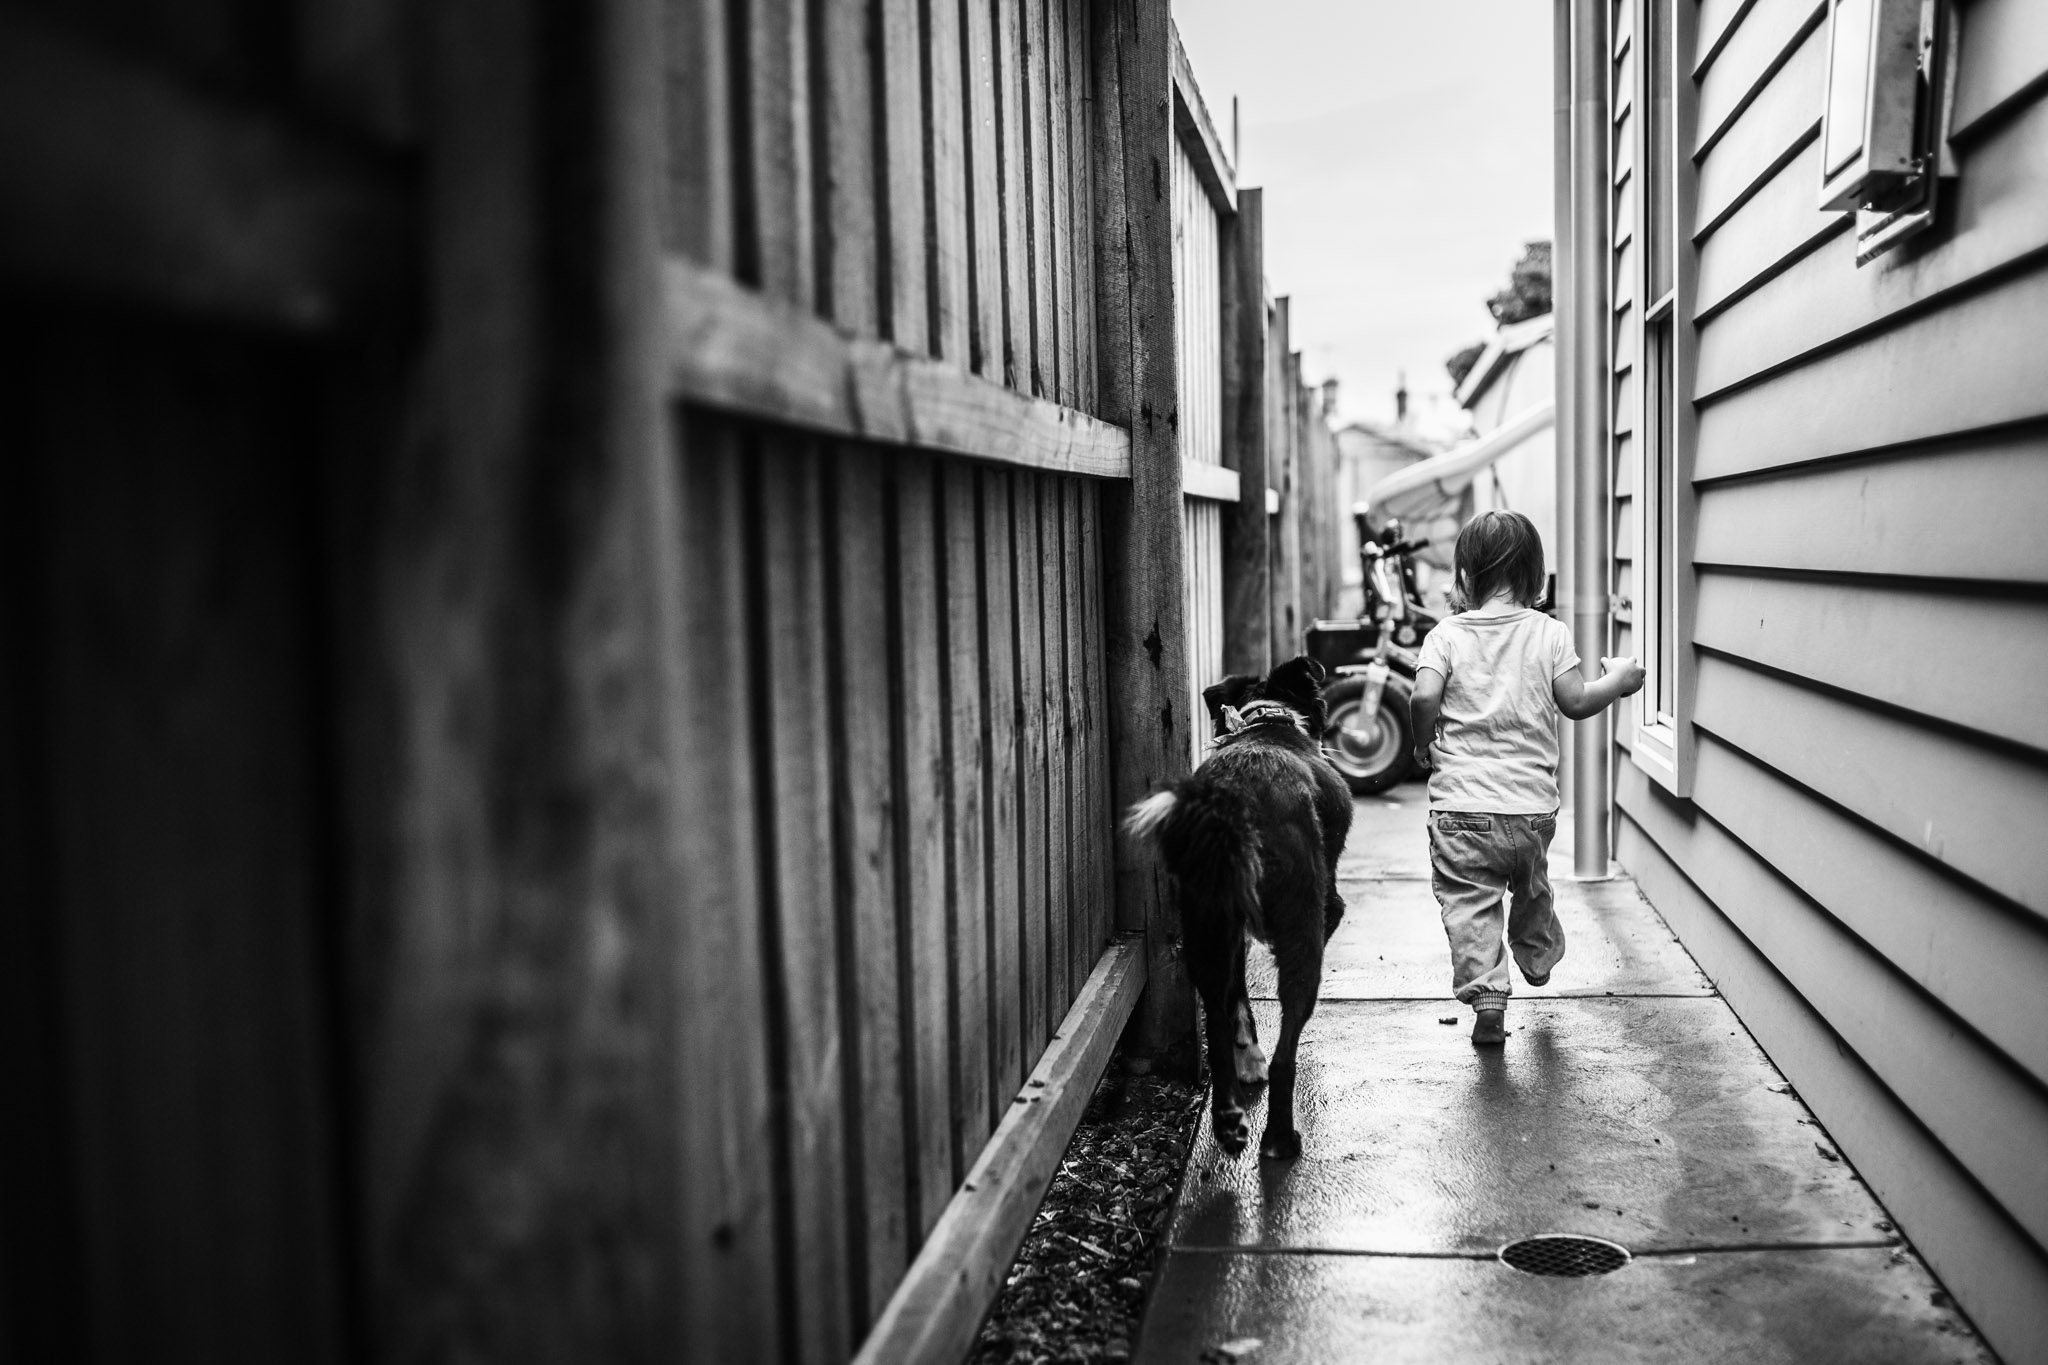 little-girl-and-dog-wandering-down-side-of-house-together-BW (1 of 1).jpg